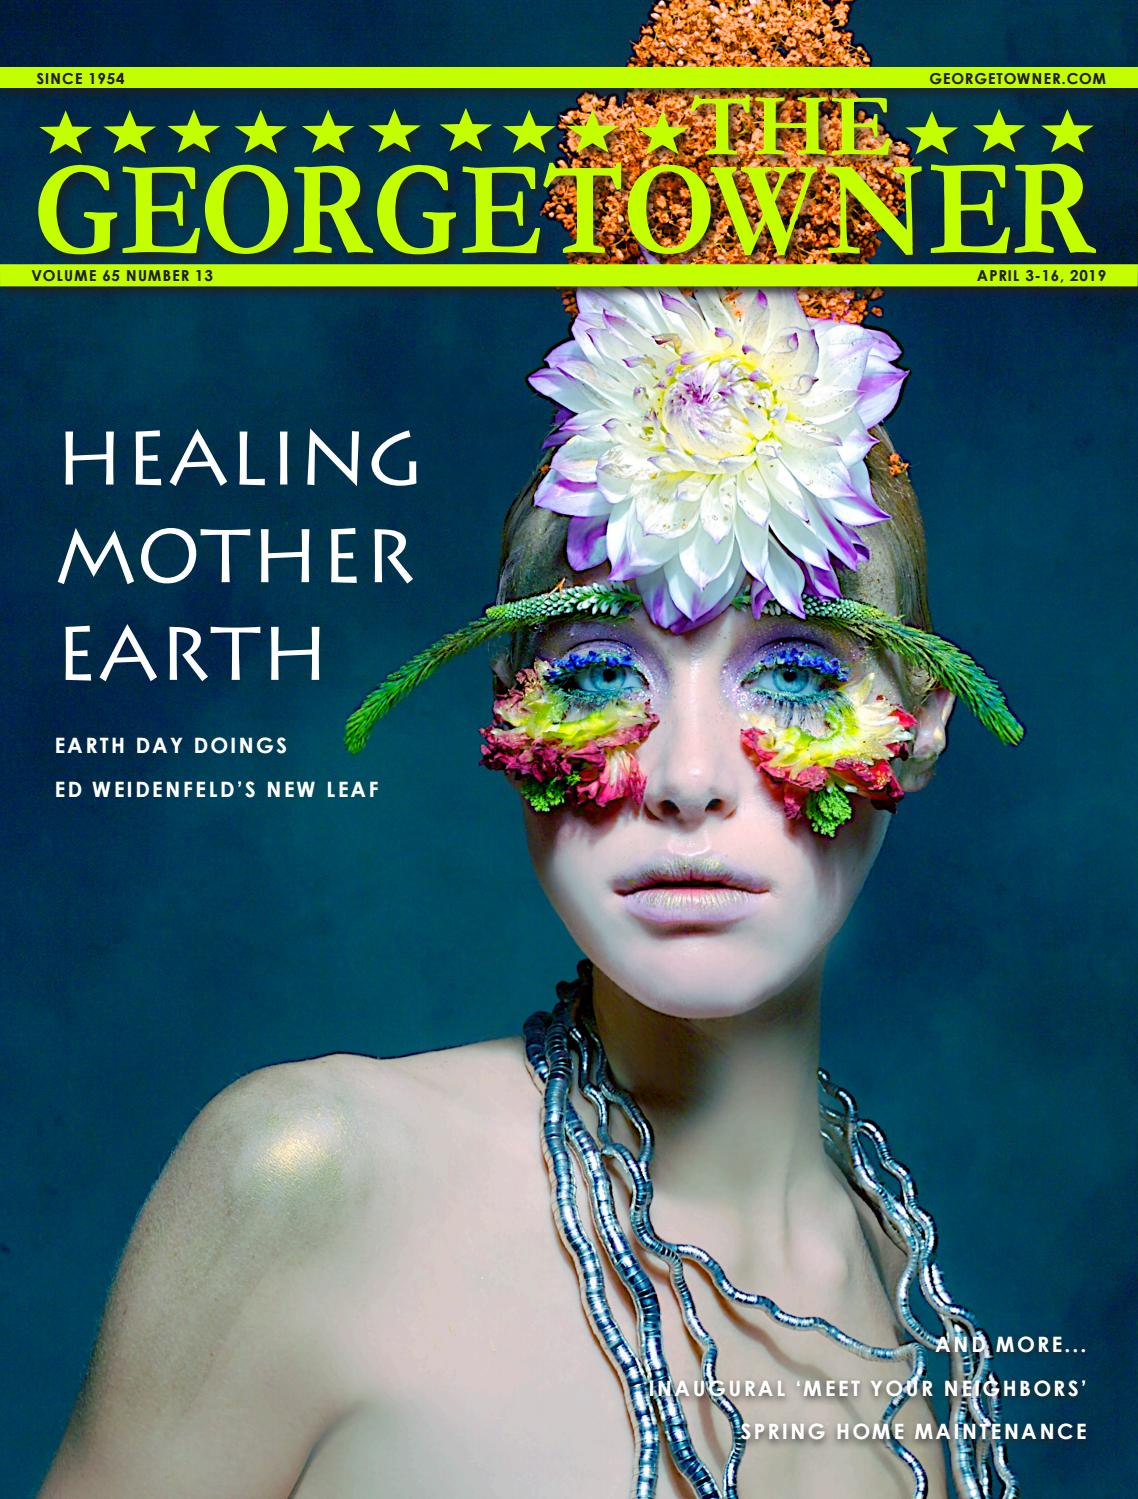 The Georgetowner: April 3, 2019 Issue by Georgetown Media Group, Inc